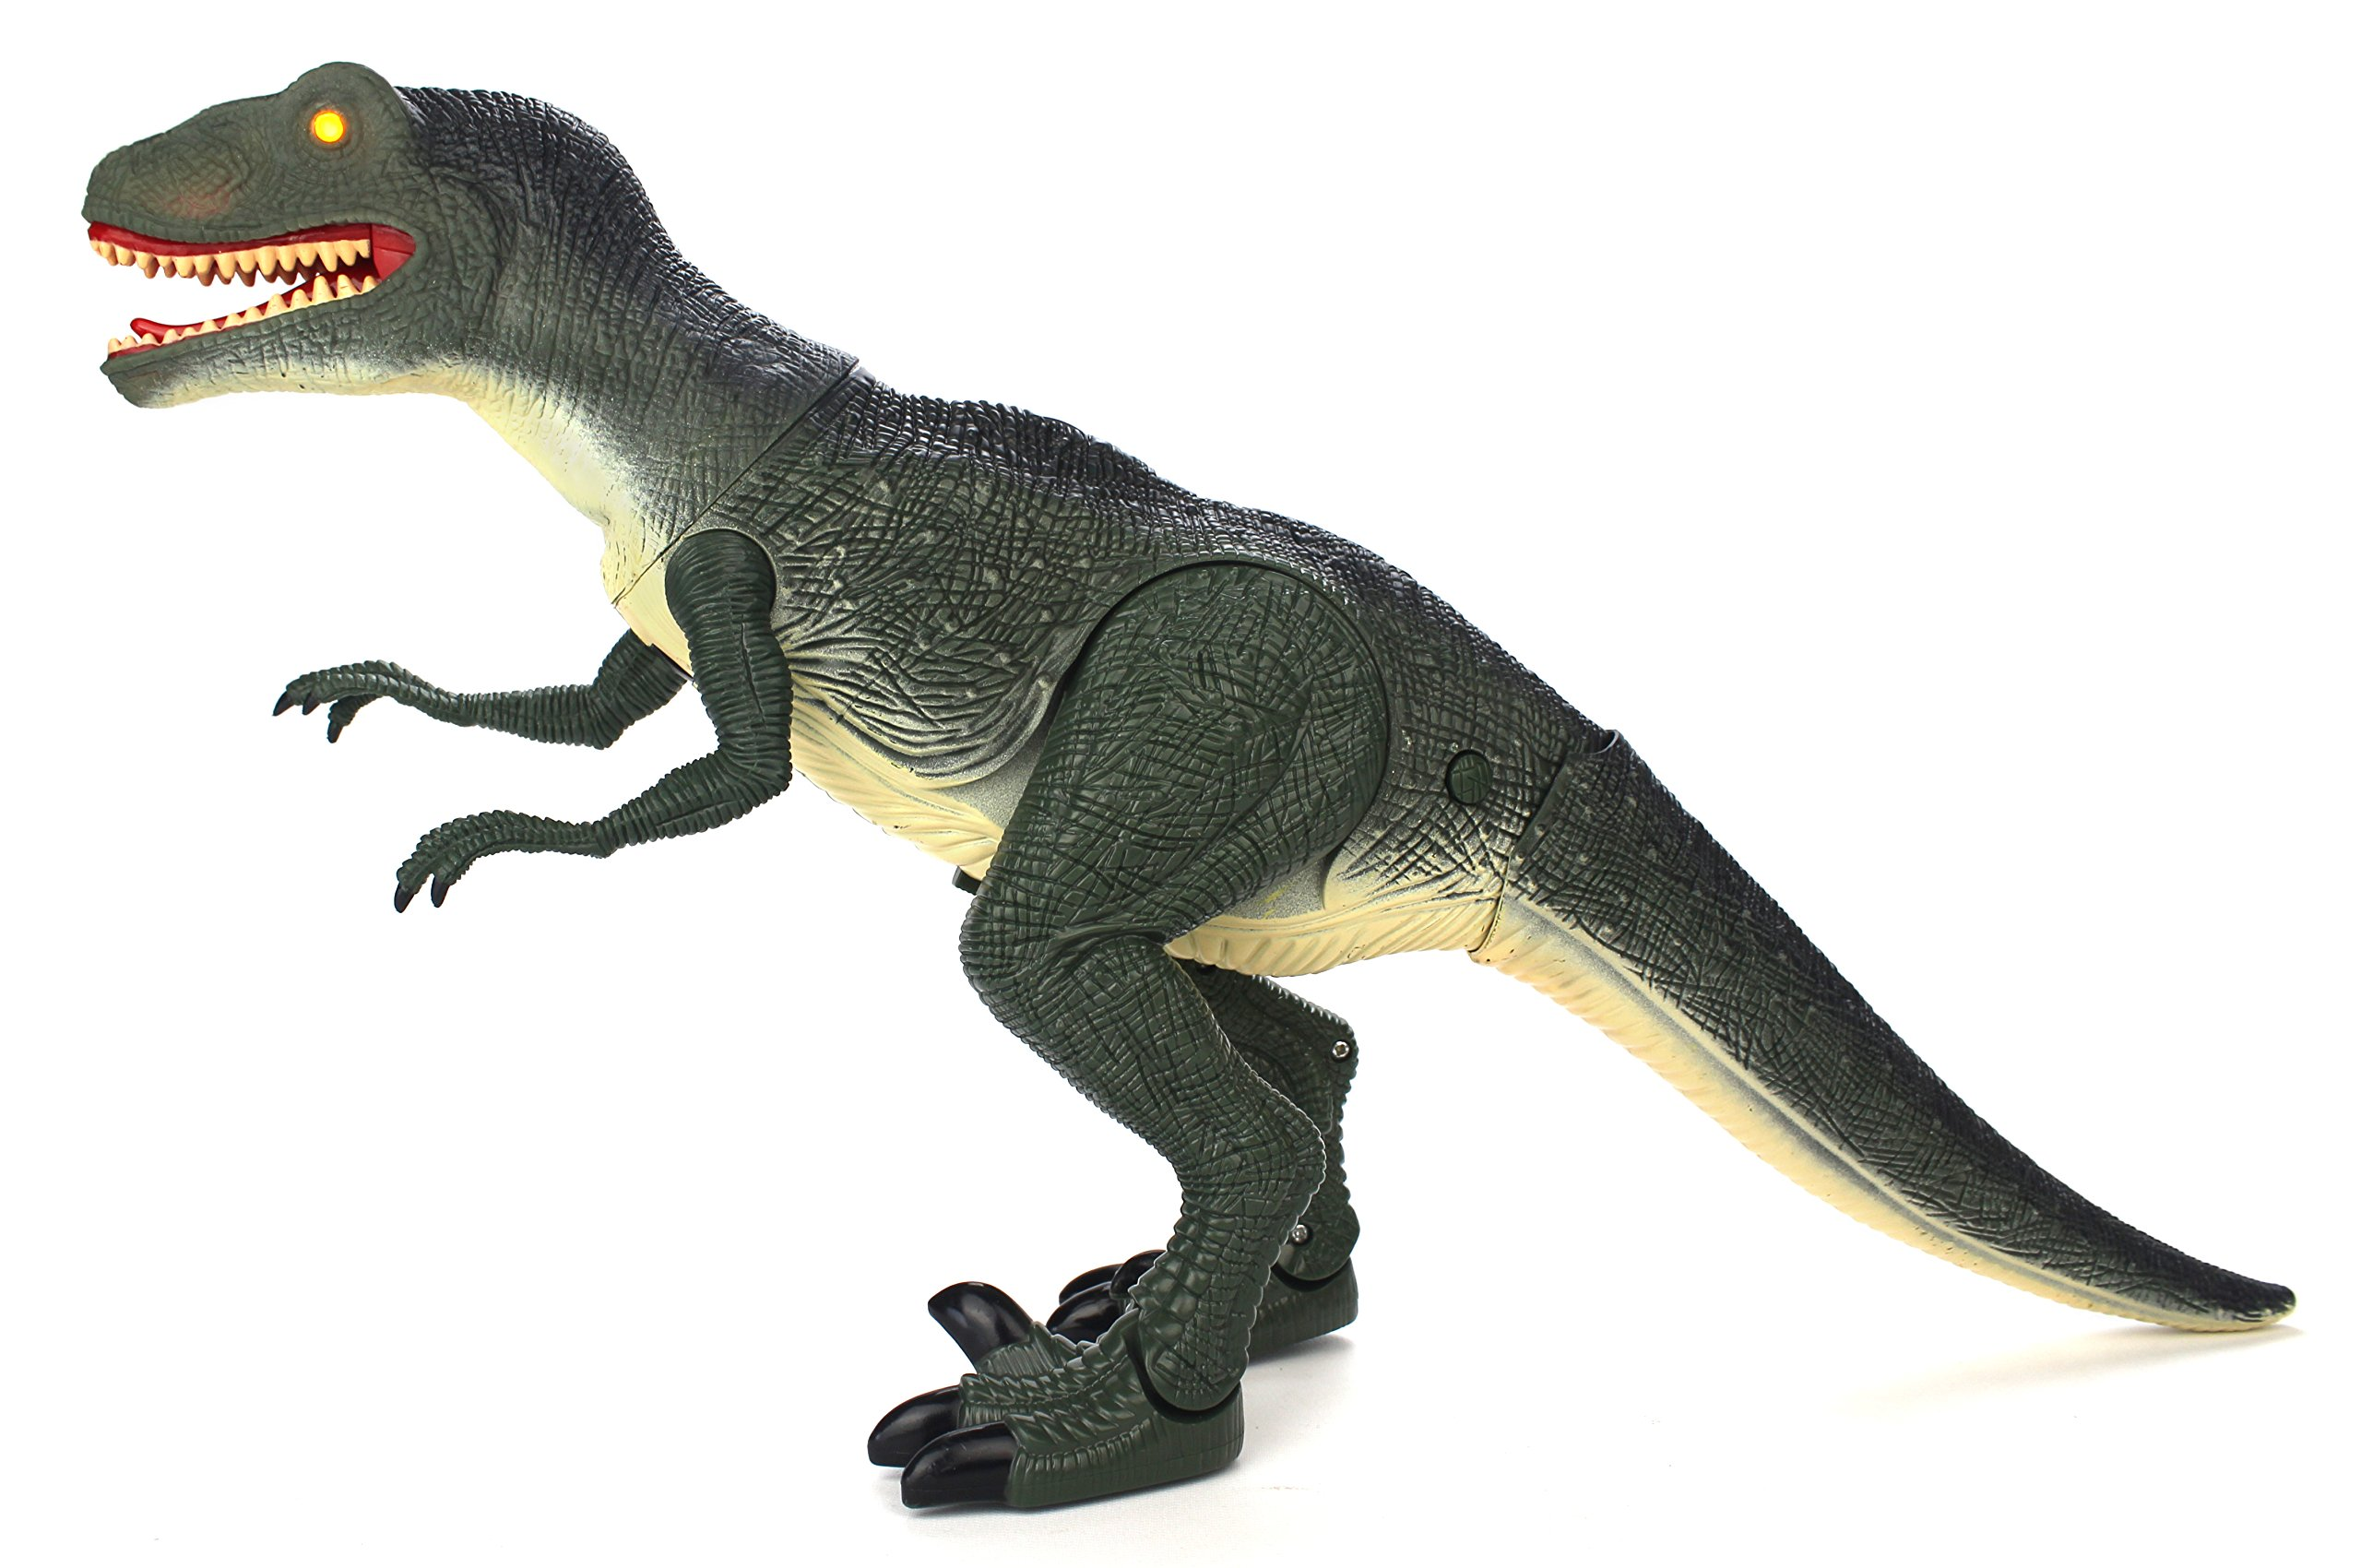 Dinosaur Planet Raptor Remote Controlled RC Battery Operated Toy Velociraptor Figure w/Shaking Head, Walking Movement, Light Up Eyes & Sounds by Velocity Toys (Image #3)